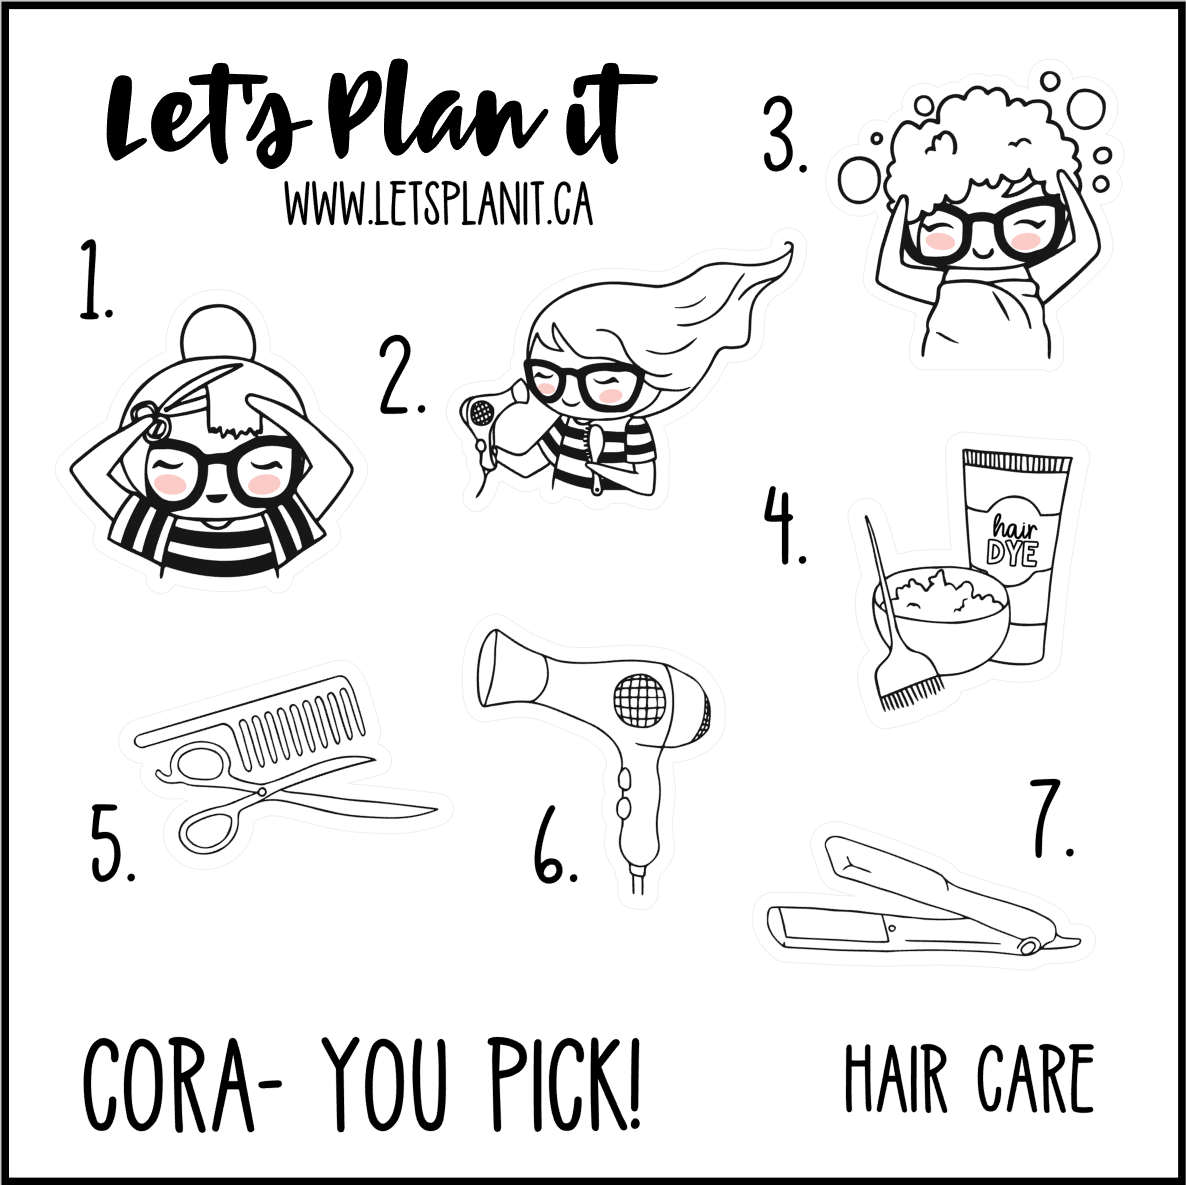 Cora-u-pick- Hair Care